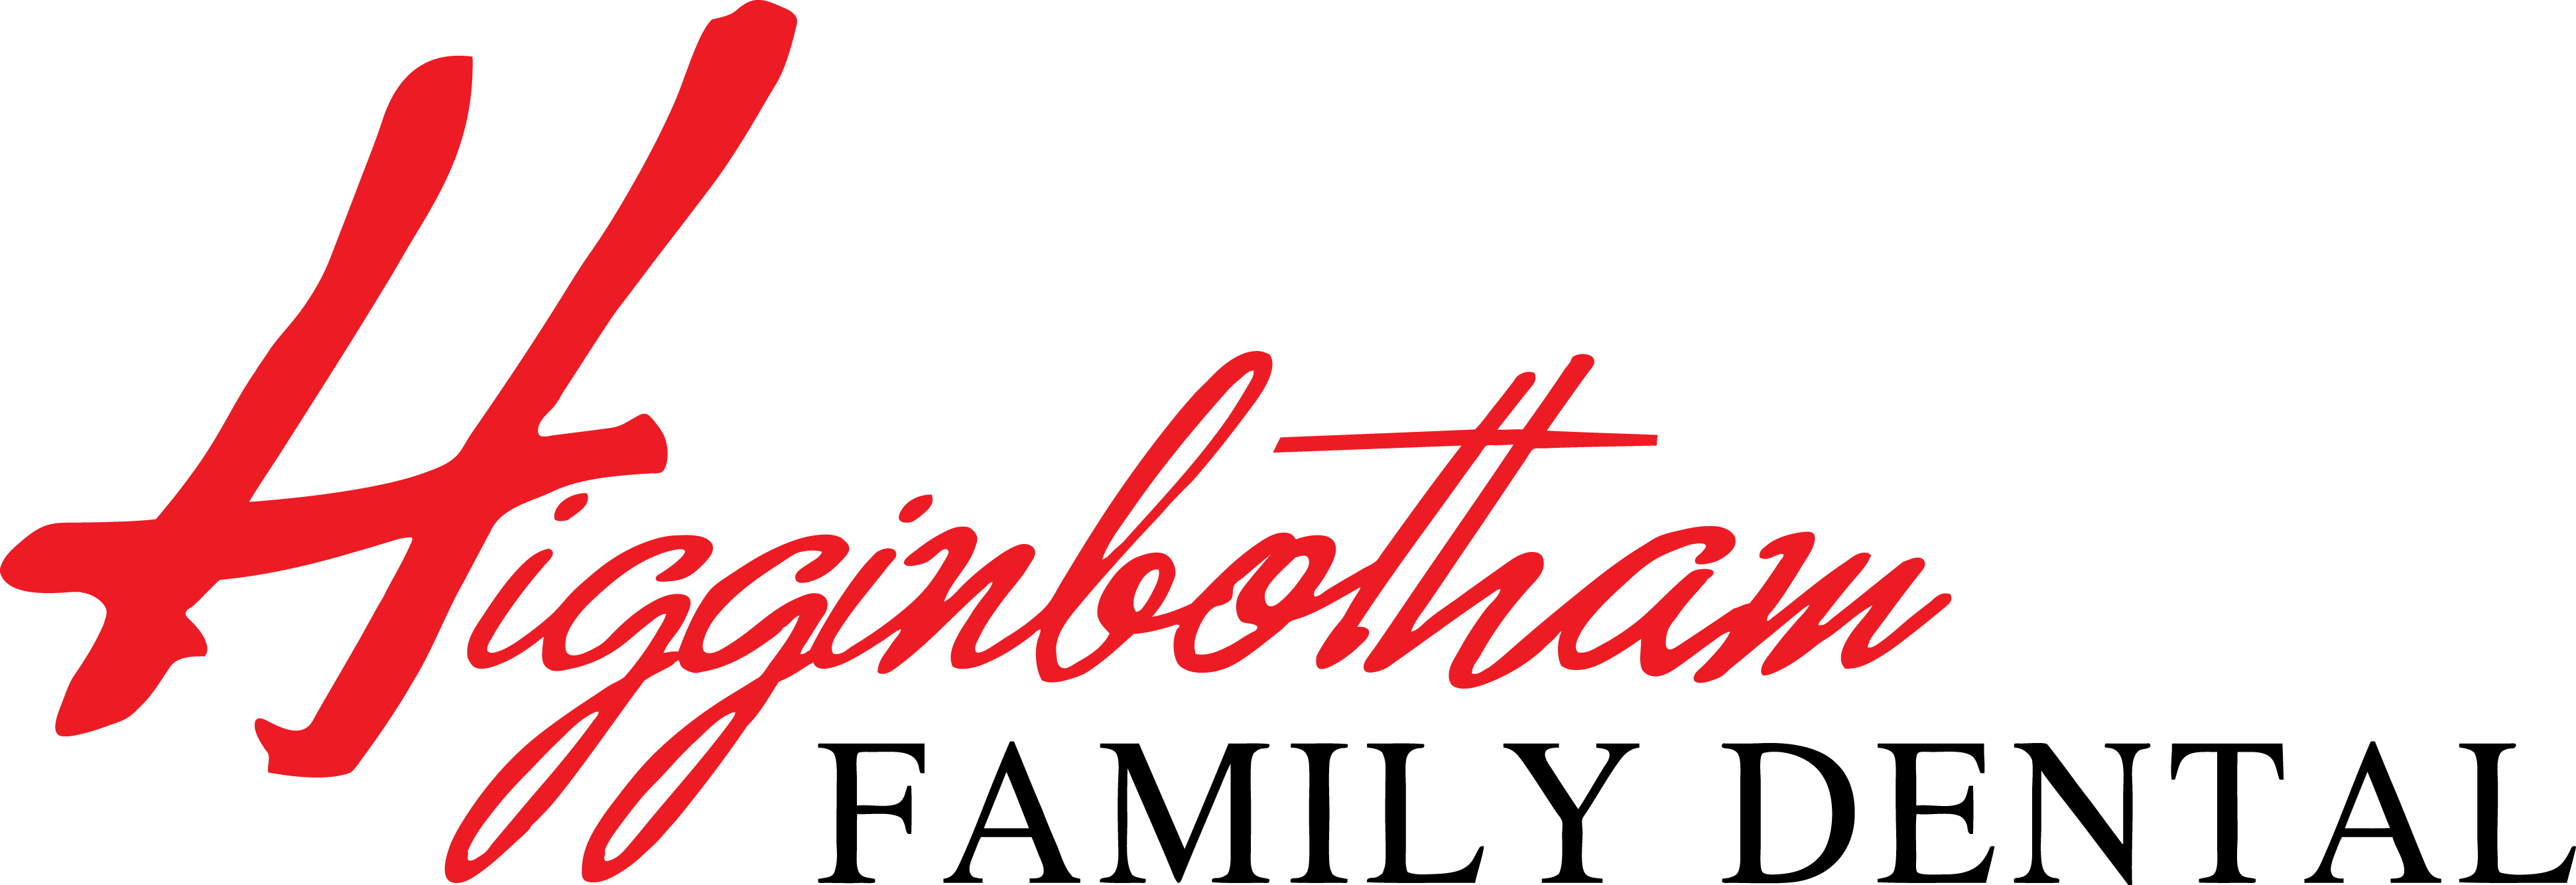 Higginbotham Family Dental Logo